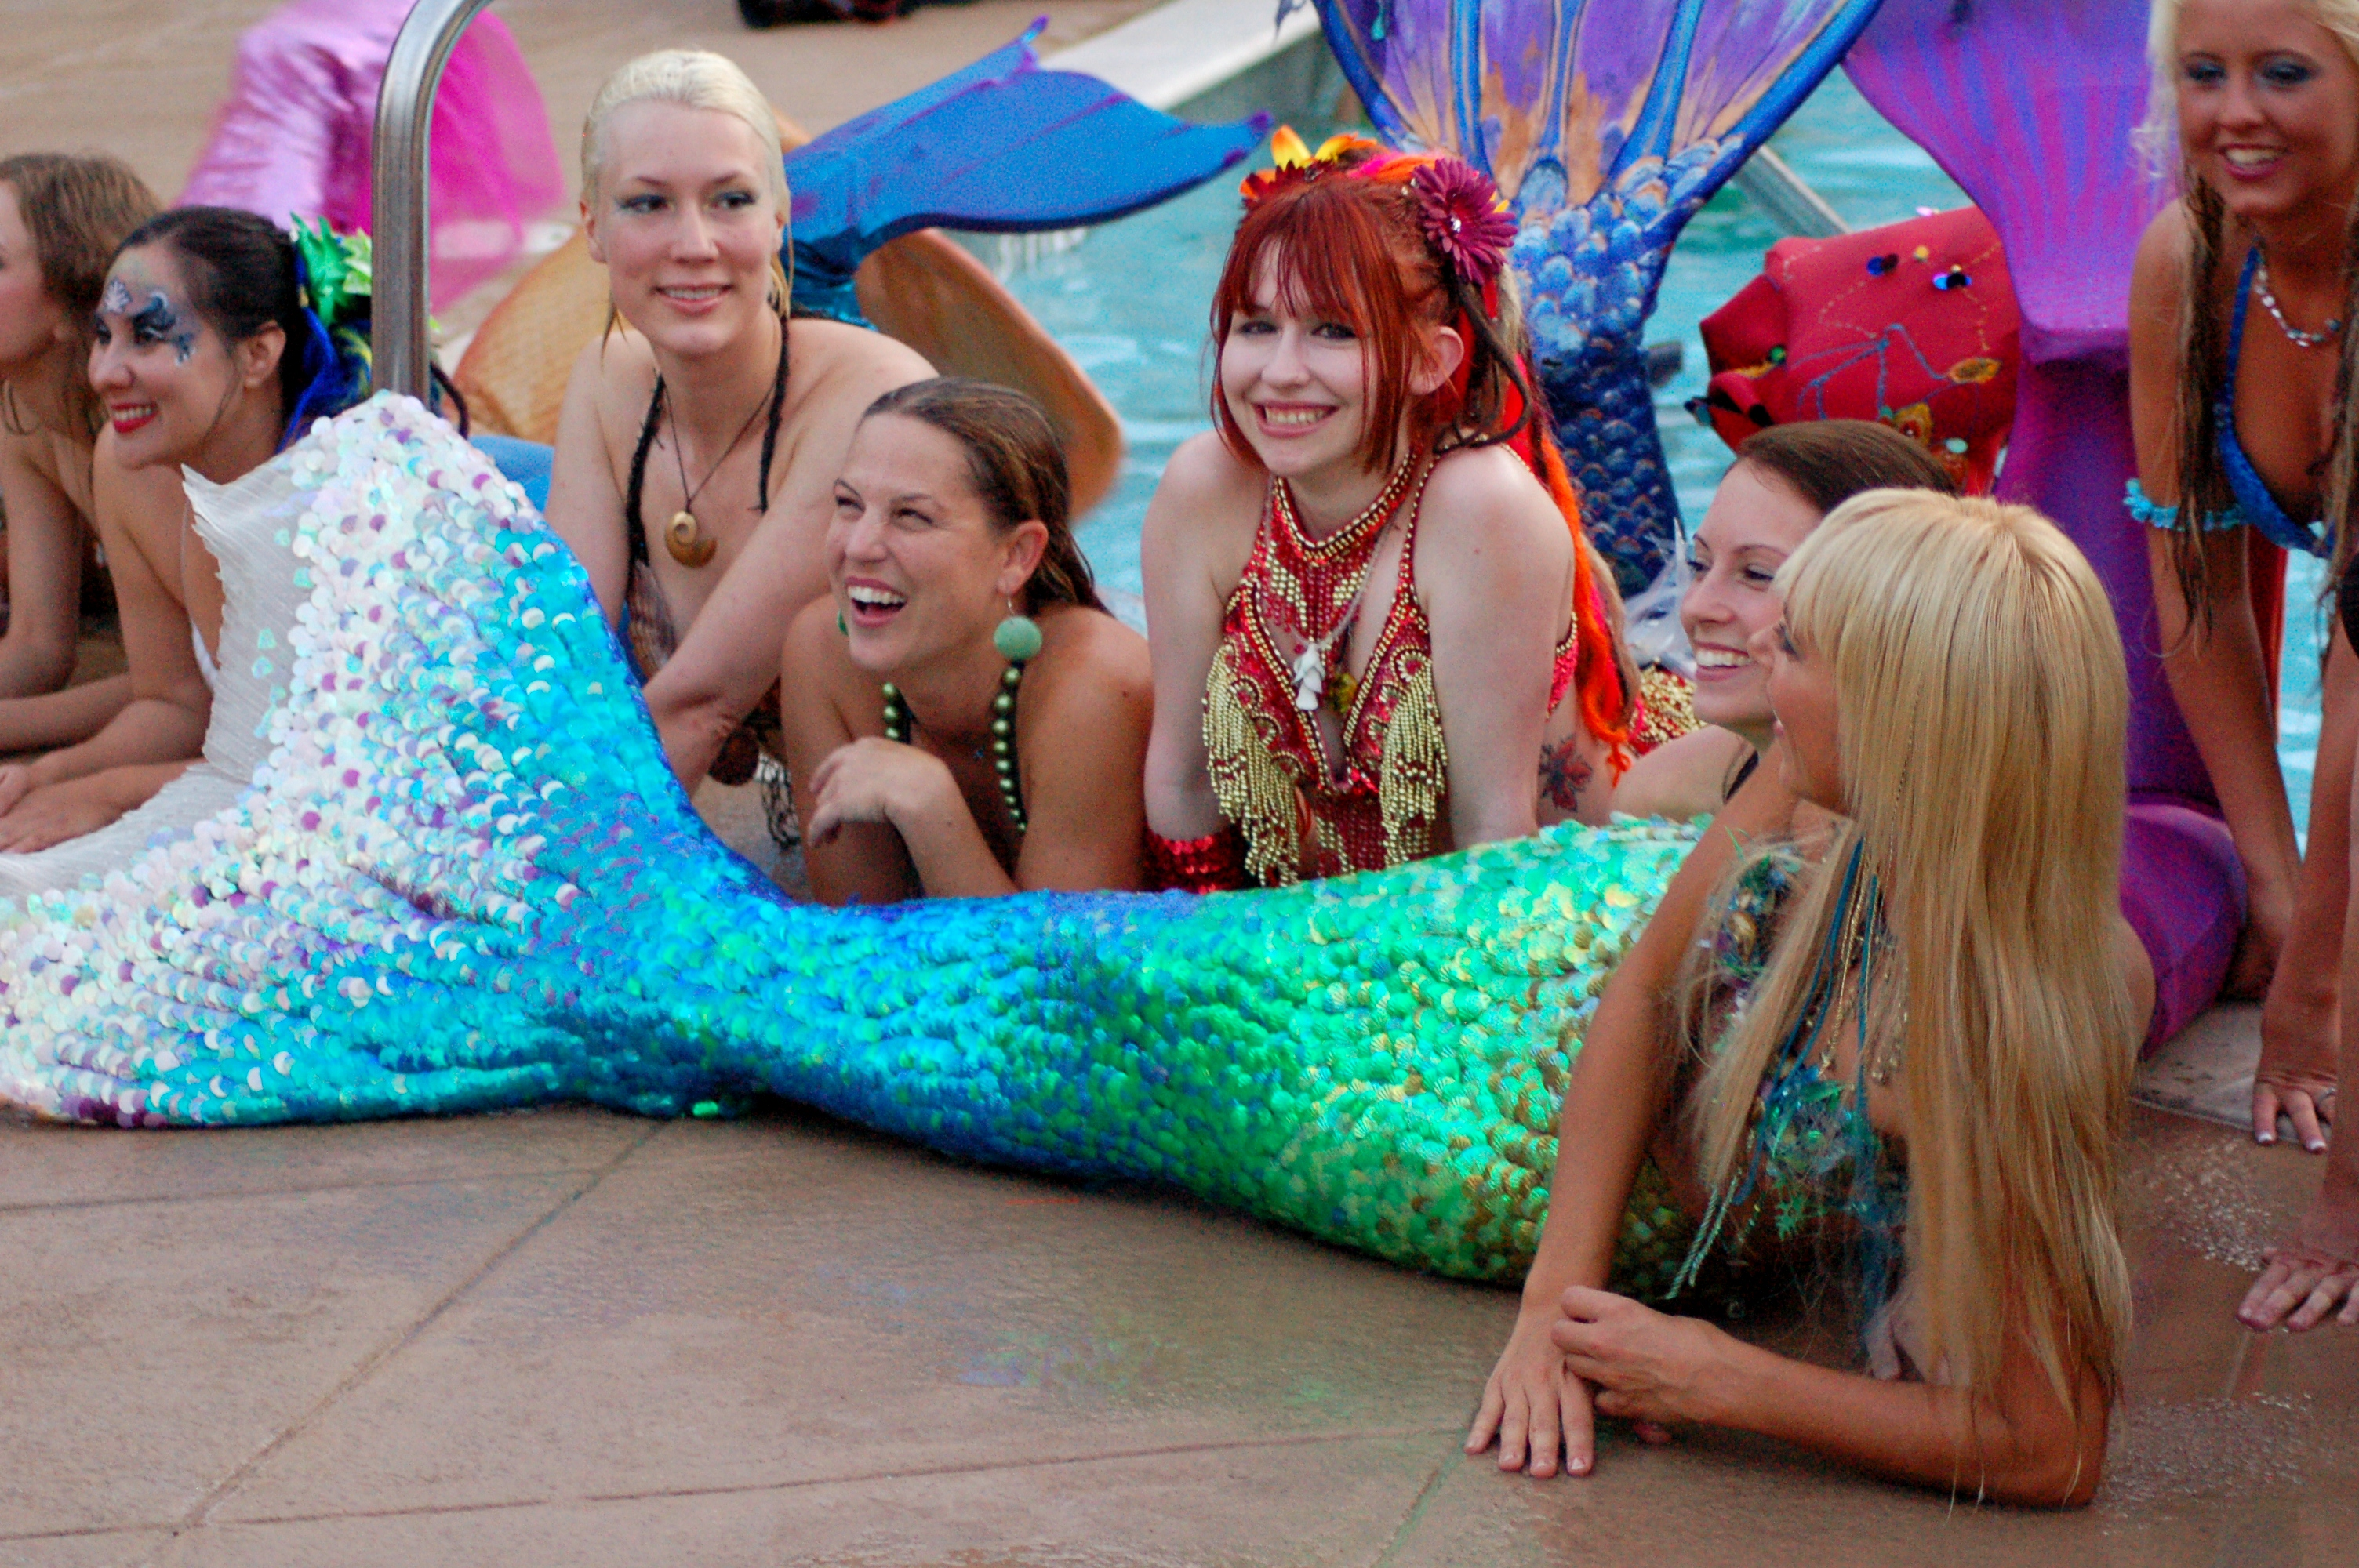 Mermaid Convention Photography Photo #287